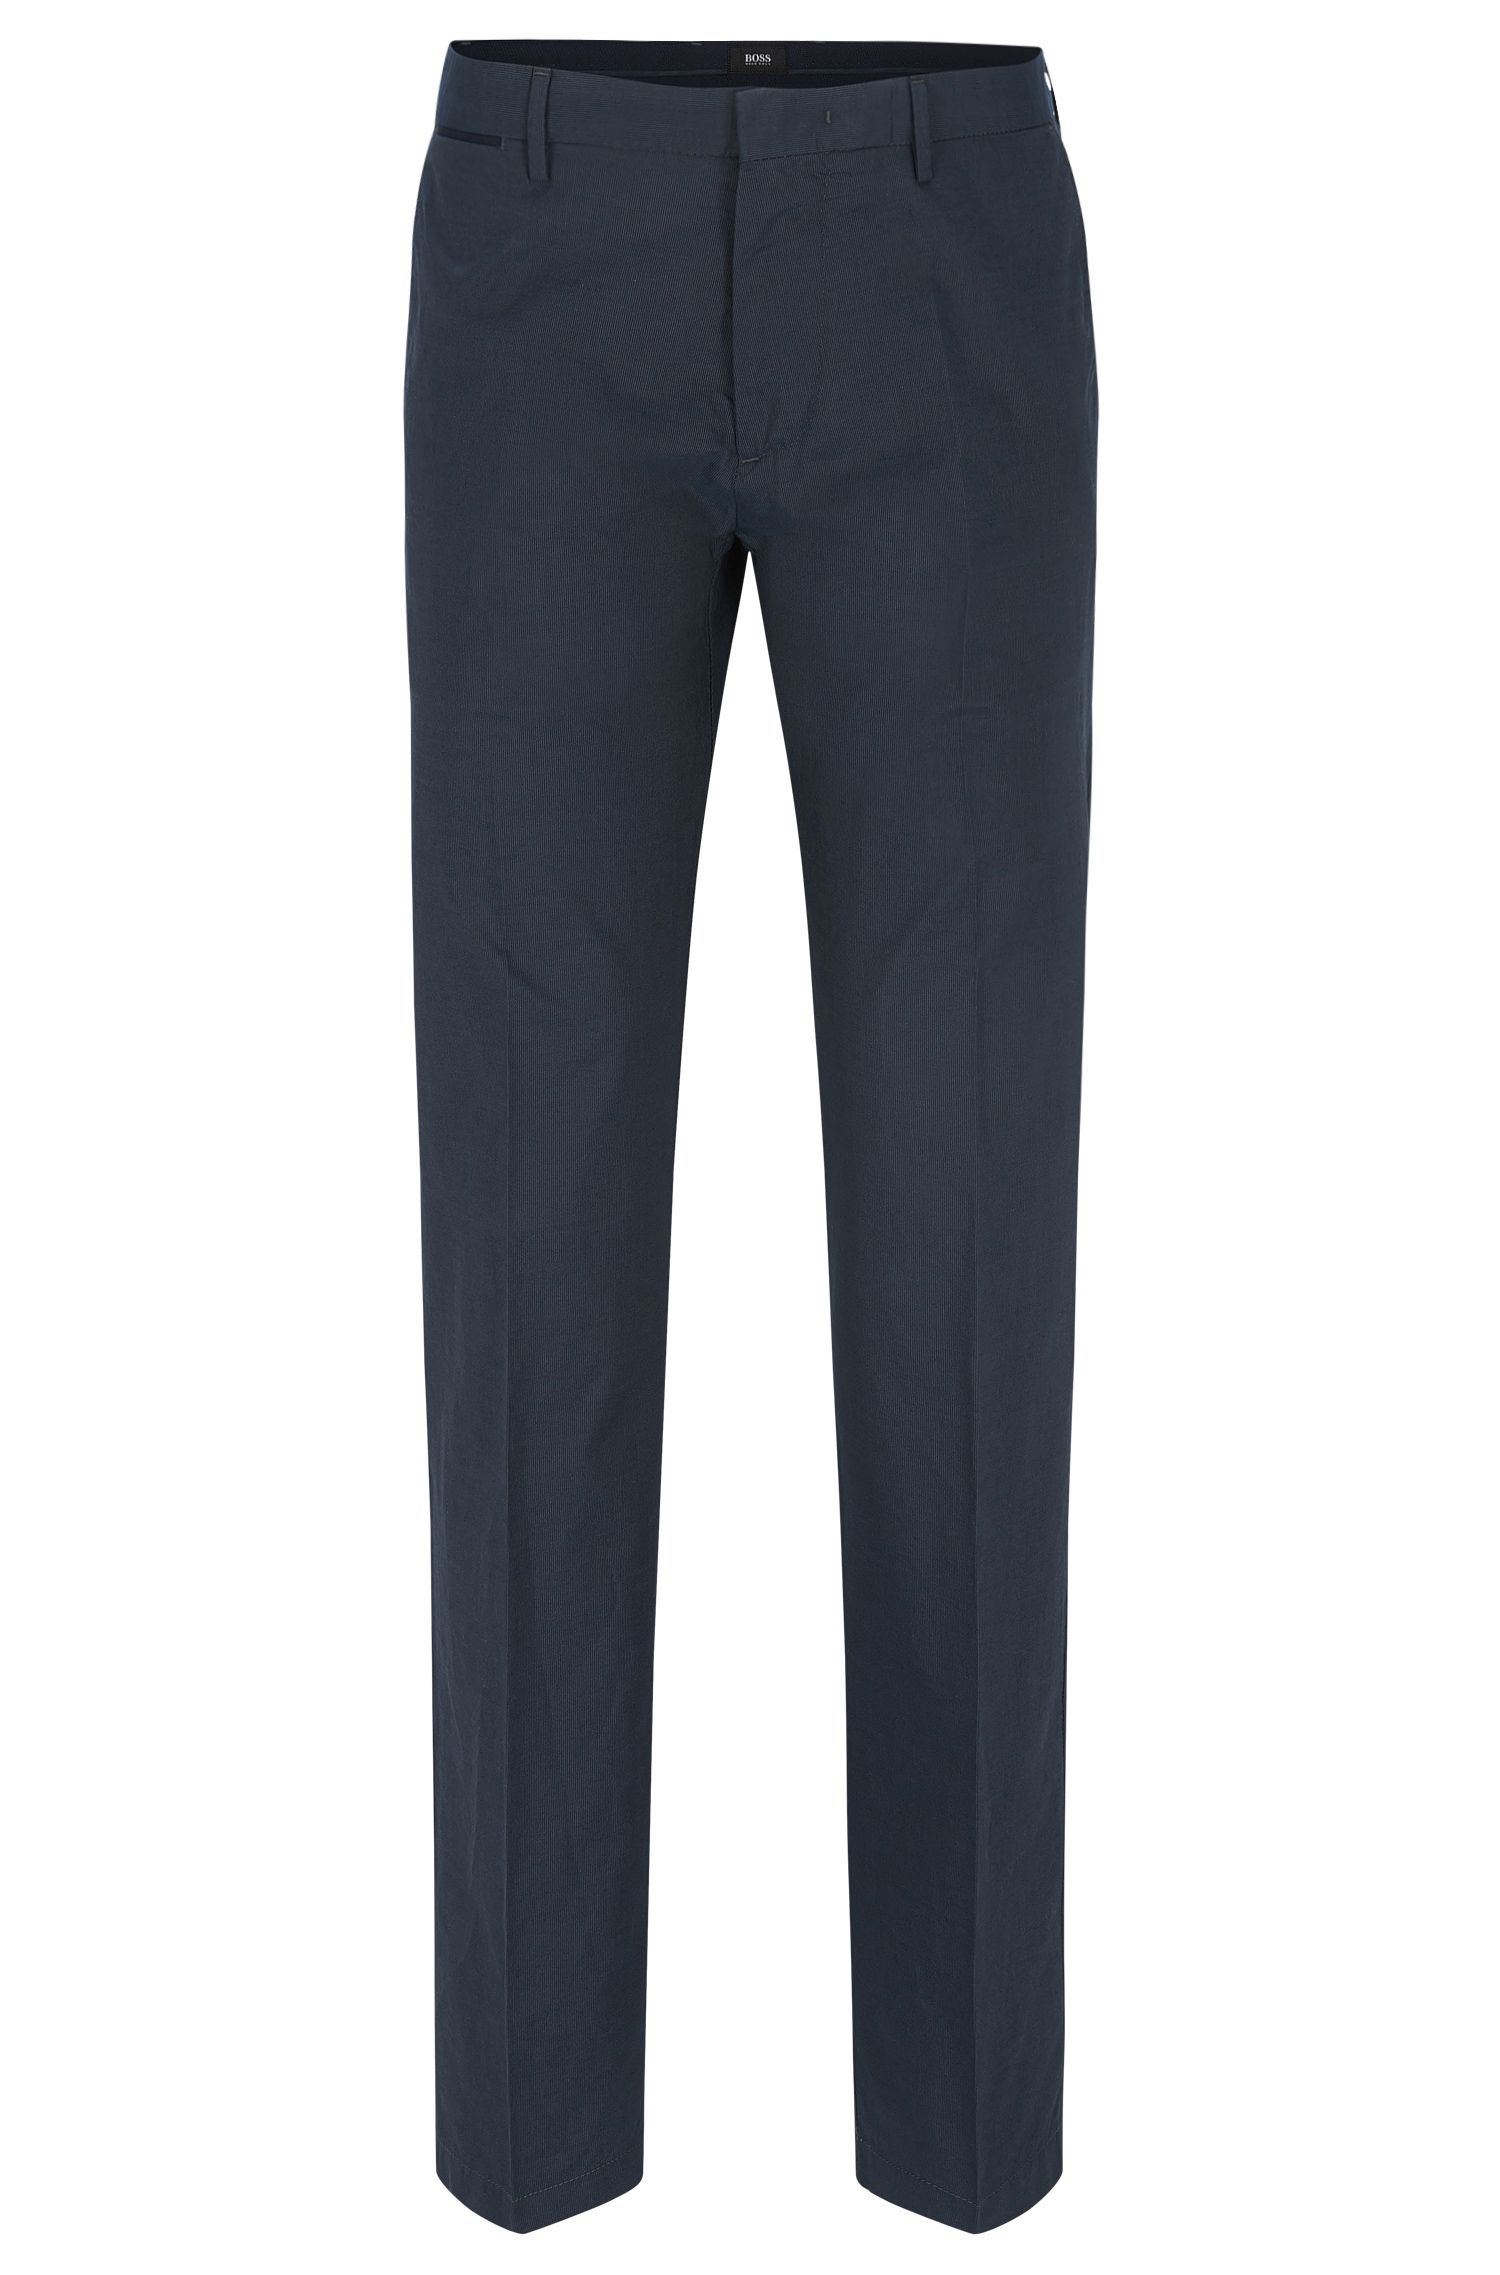 'Crigan Luxe W' | Regular Fit, Cotton-Silk Trousers